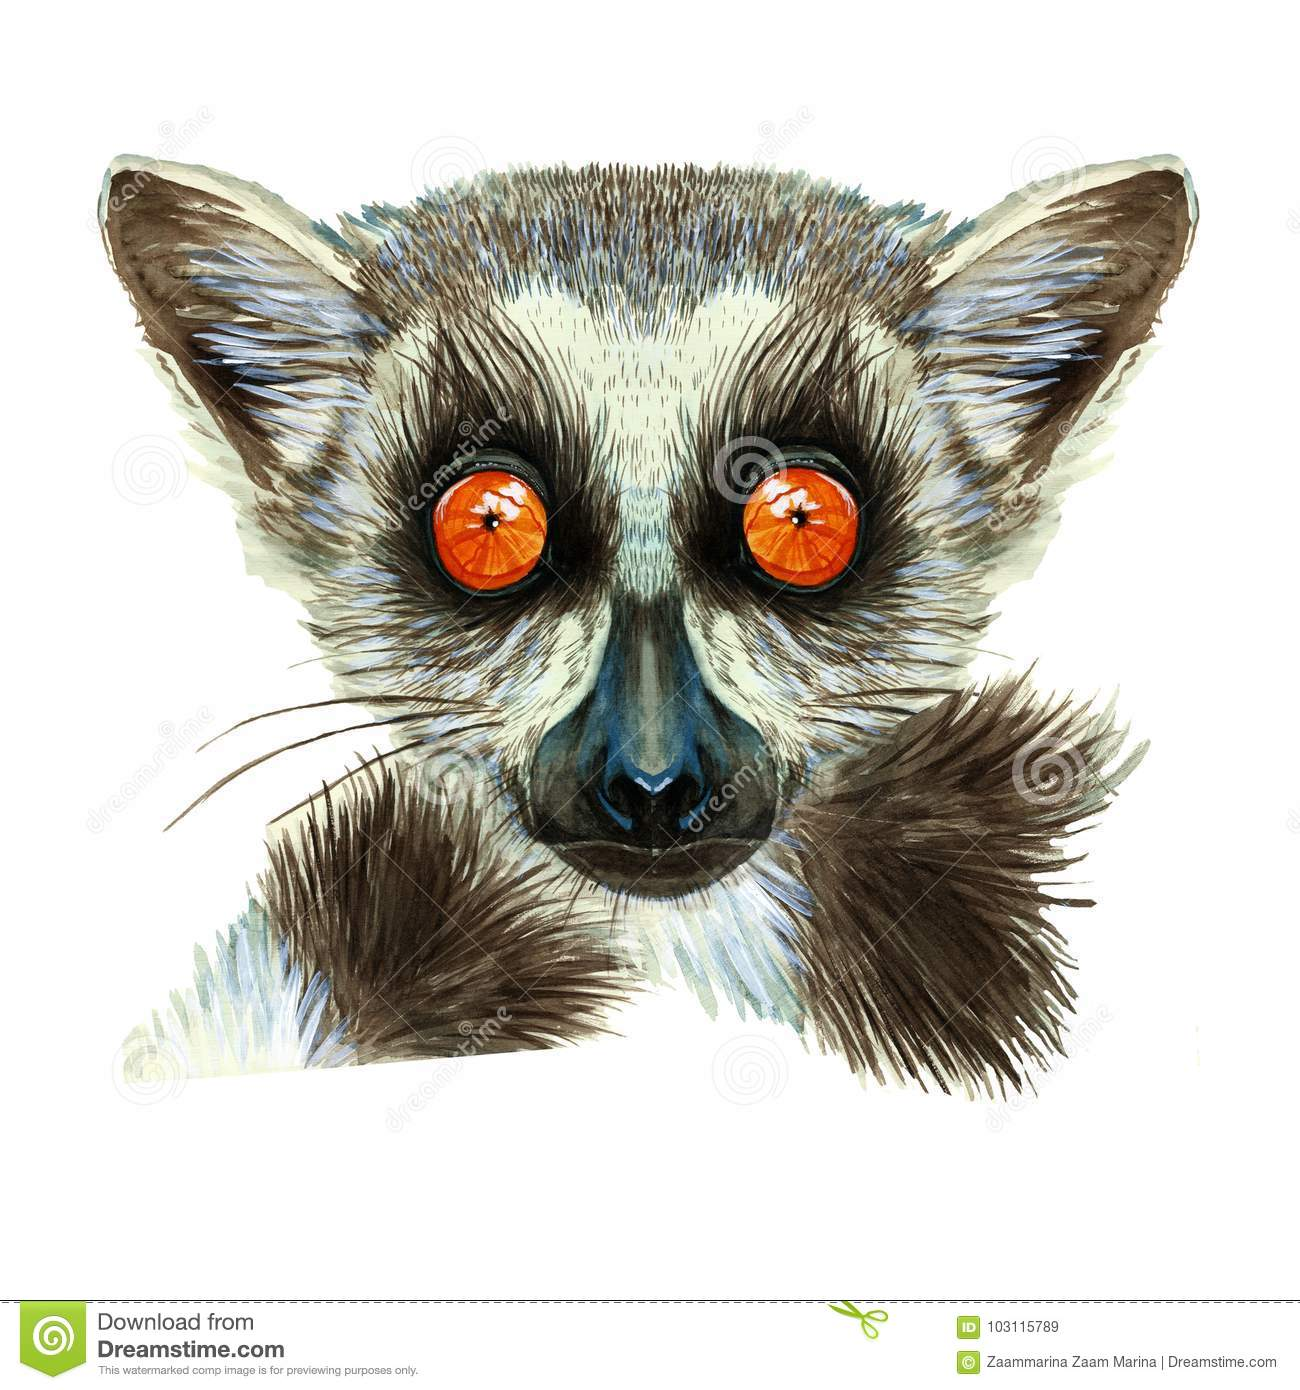 Watercolor drawing of mammal animal of lemur with large orange eyes with hair and tail, portrait of lemur, on white background fo